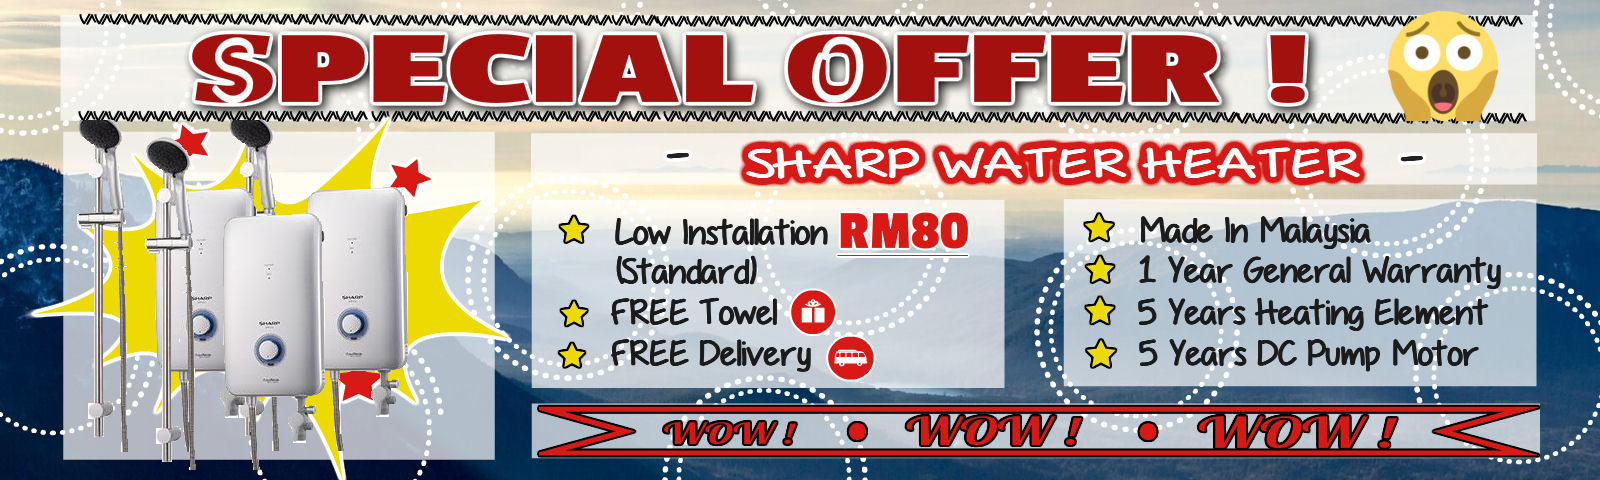 Sharp Water Heater On Offer!!